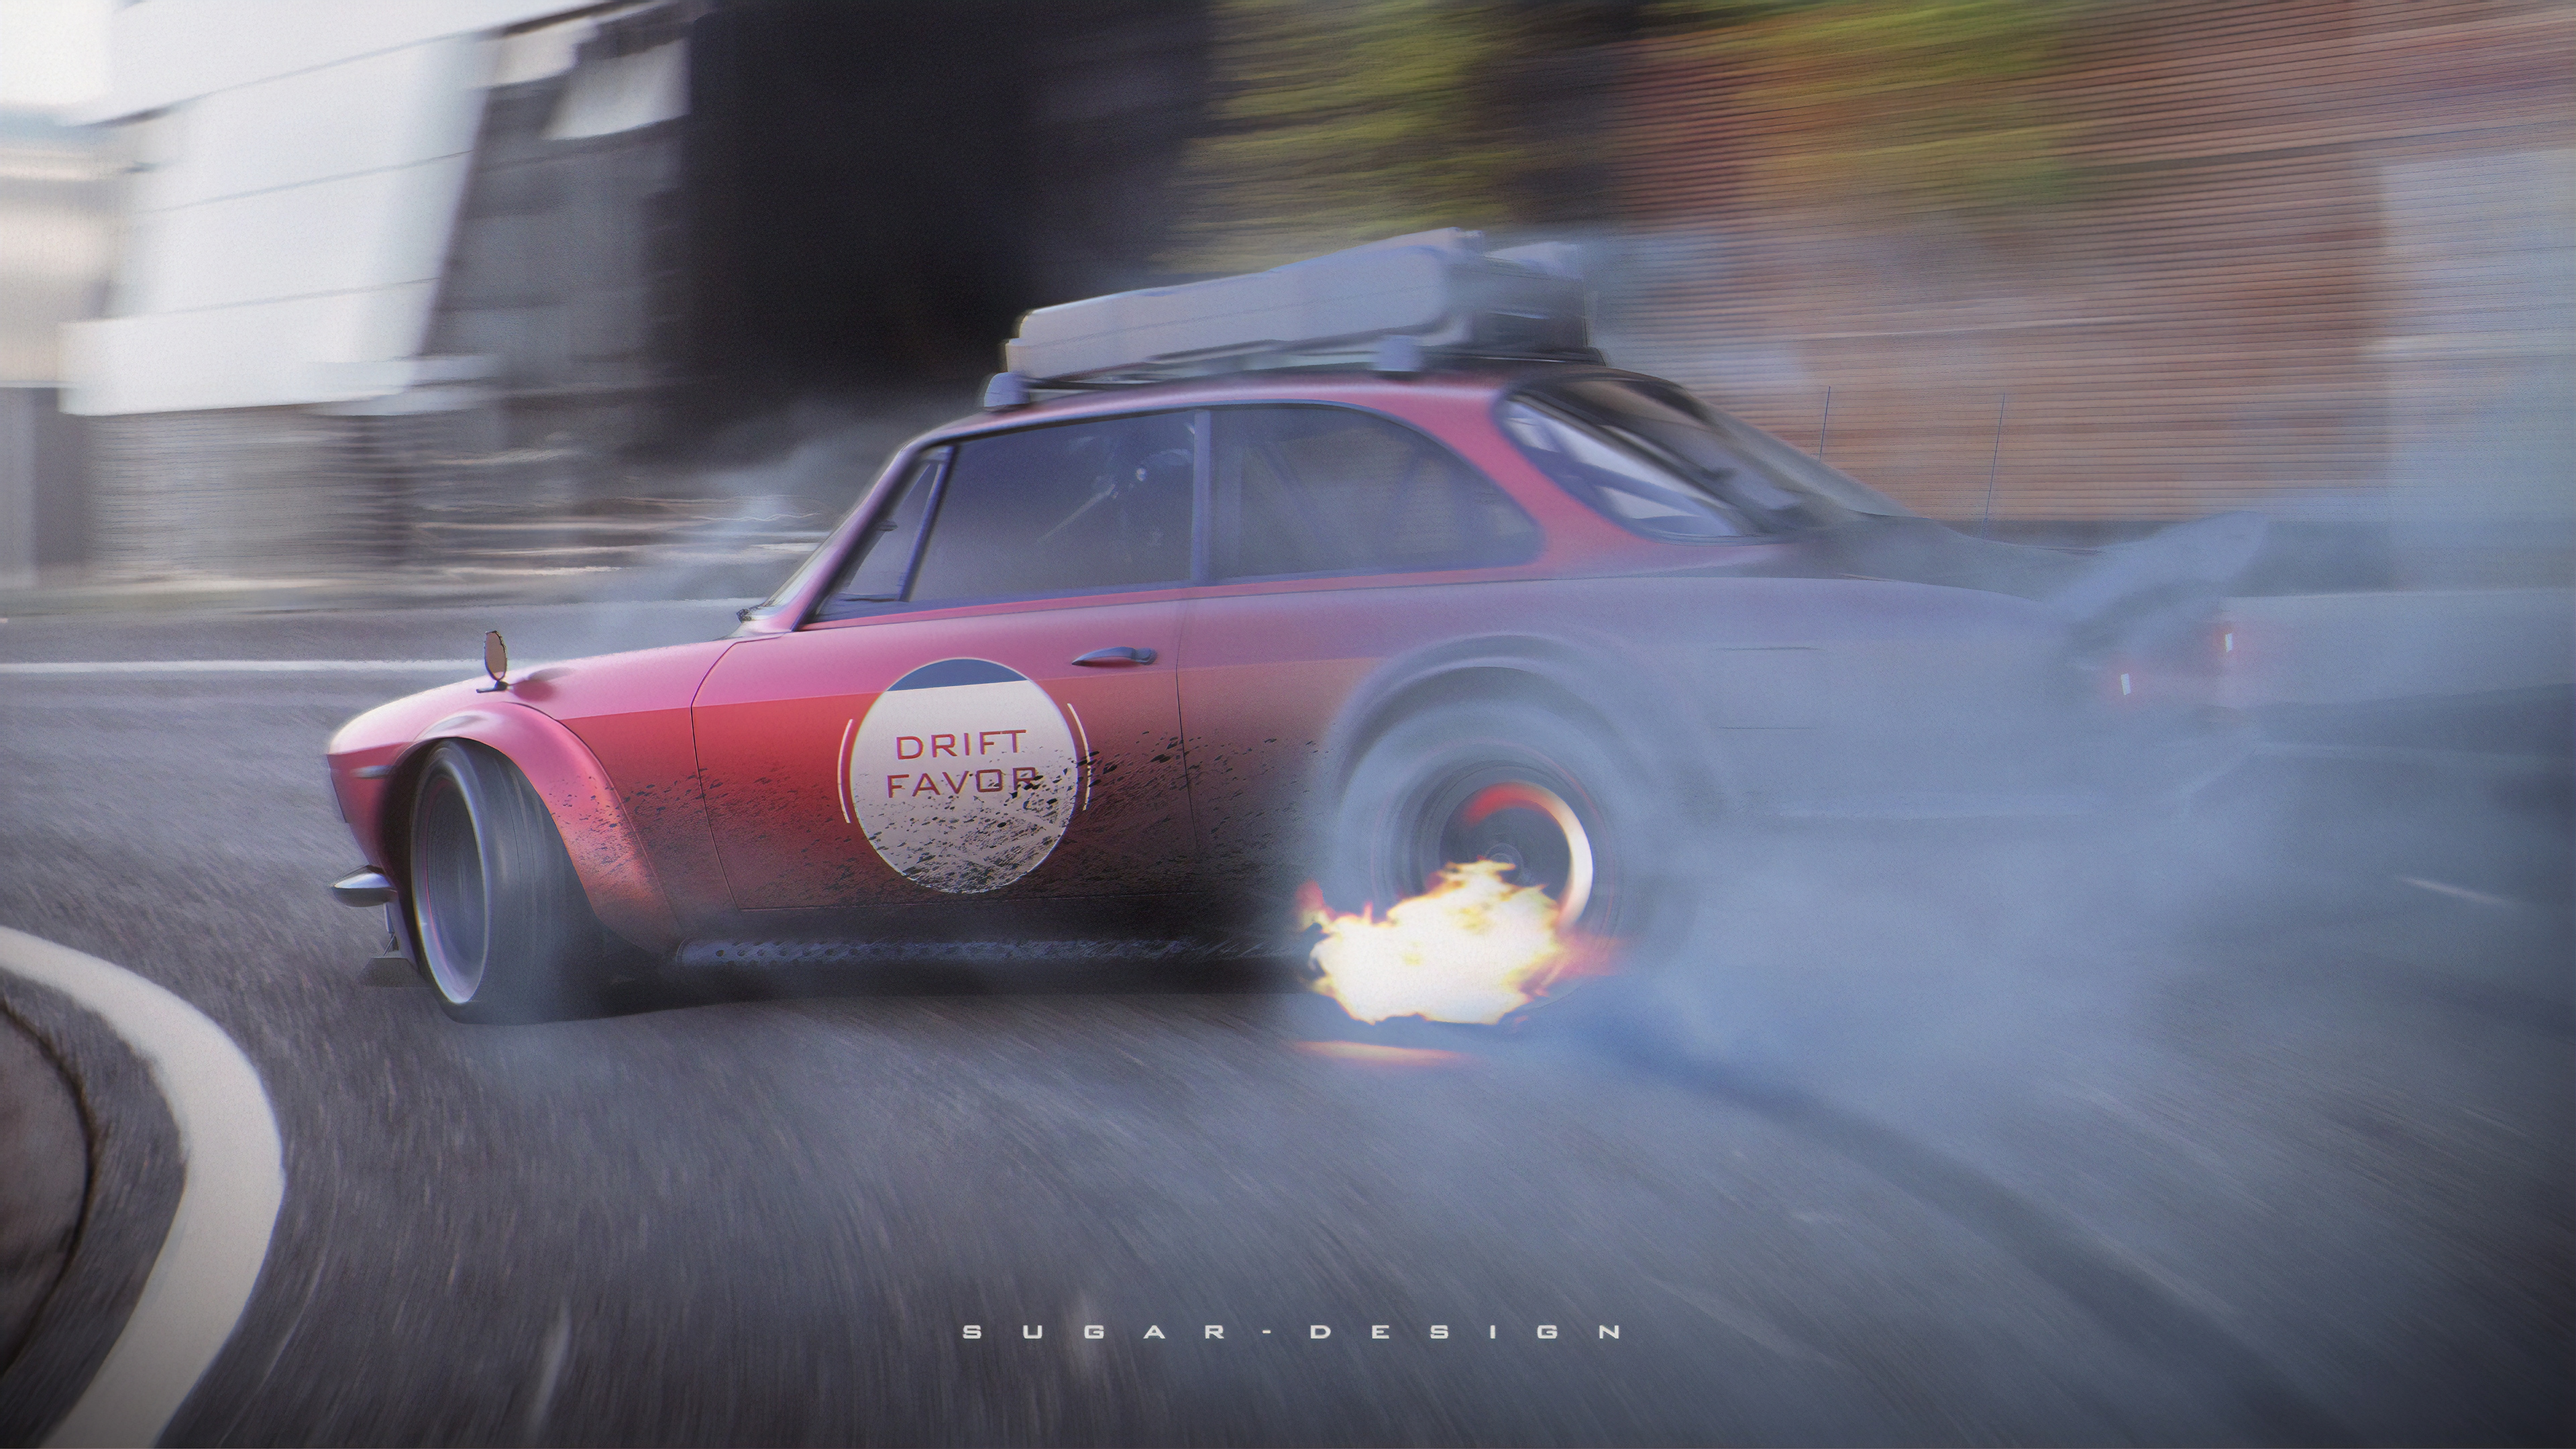 drift favor 1563221025 - Drift Favor - hd-wallpapers, drifting cars wallpapers, digital art wallpapers, cars wallpapers, artwork wallpapers, artstation wallpapers, artist wallpapers, 4k-wallpapers